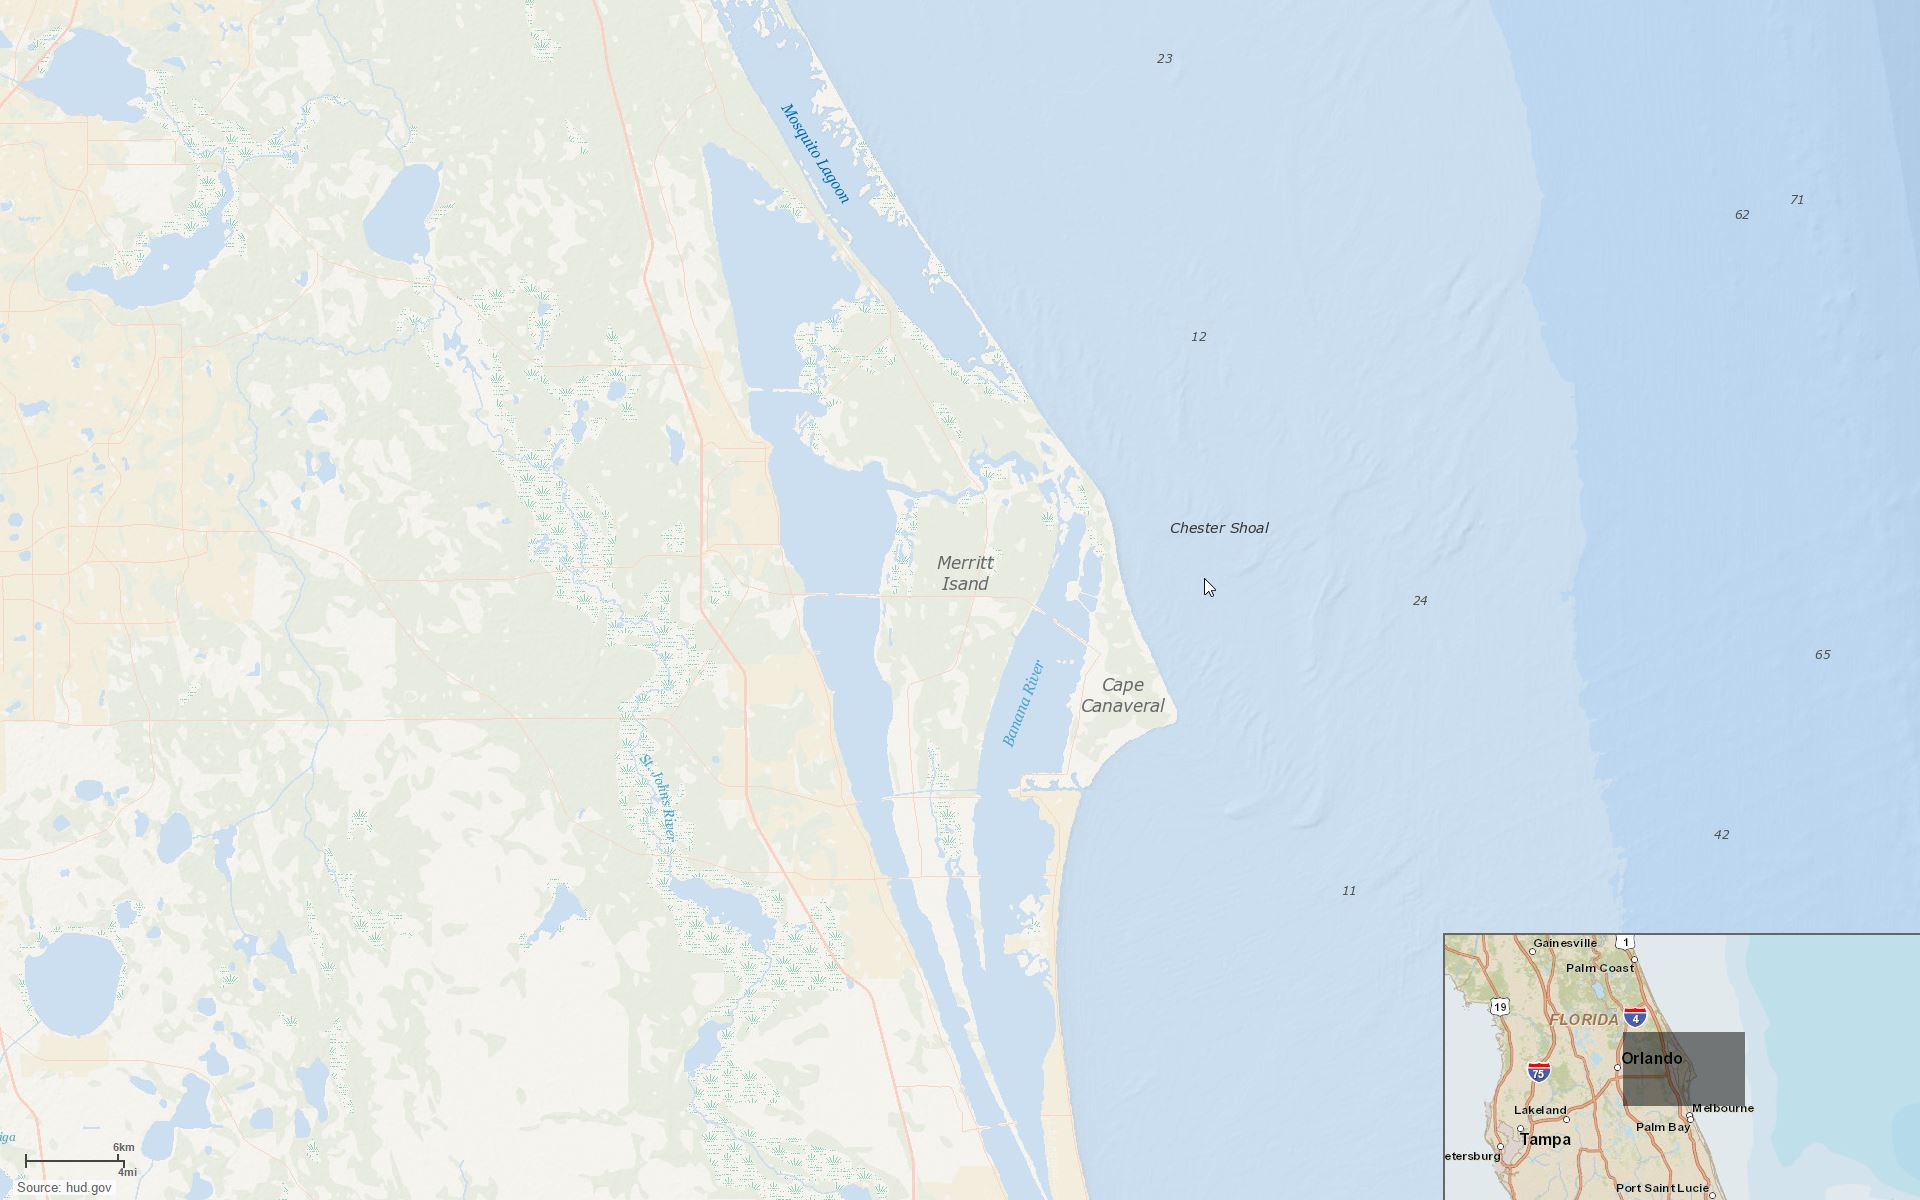 Where Is Florida Florida Maps  Mapsofnet - Florida map hallandale